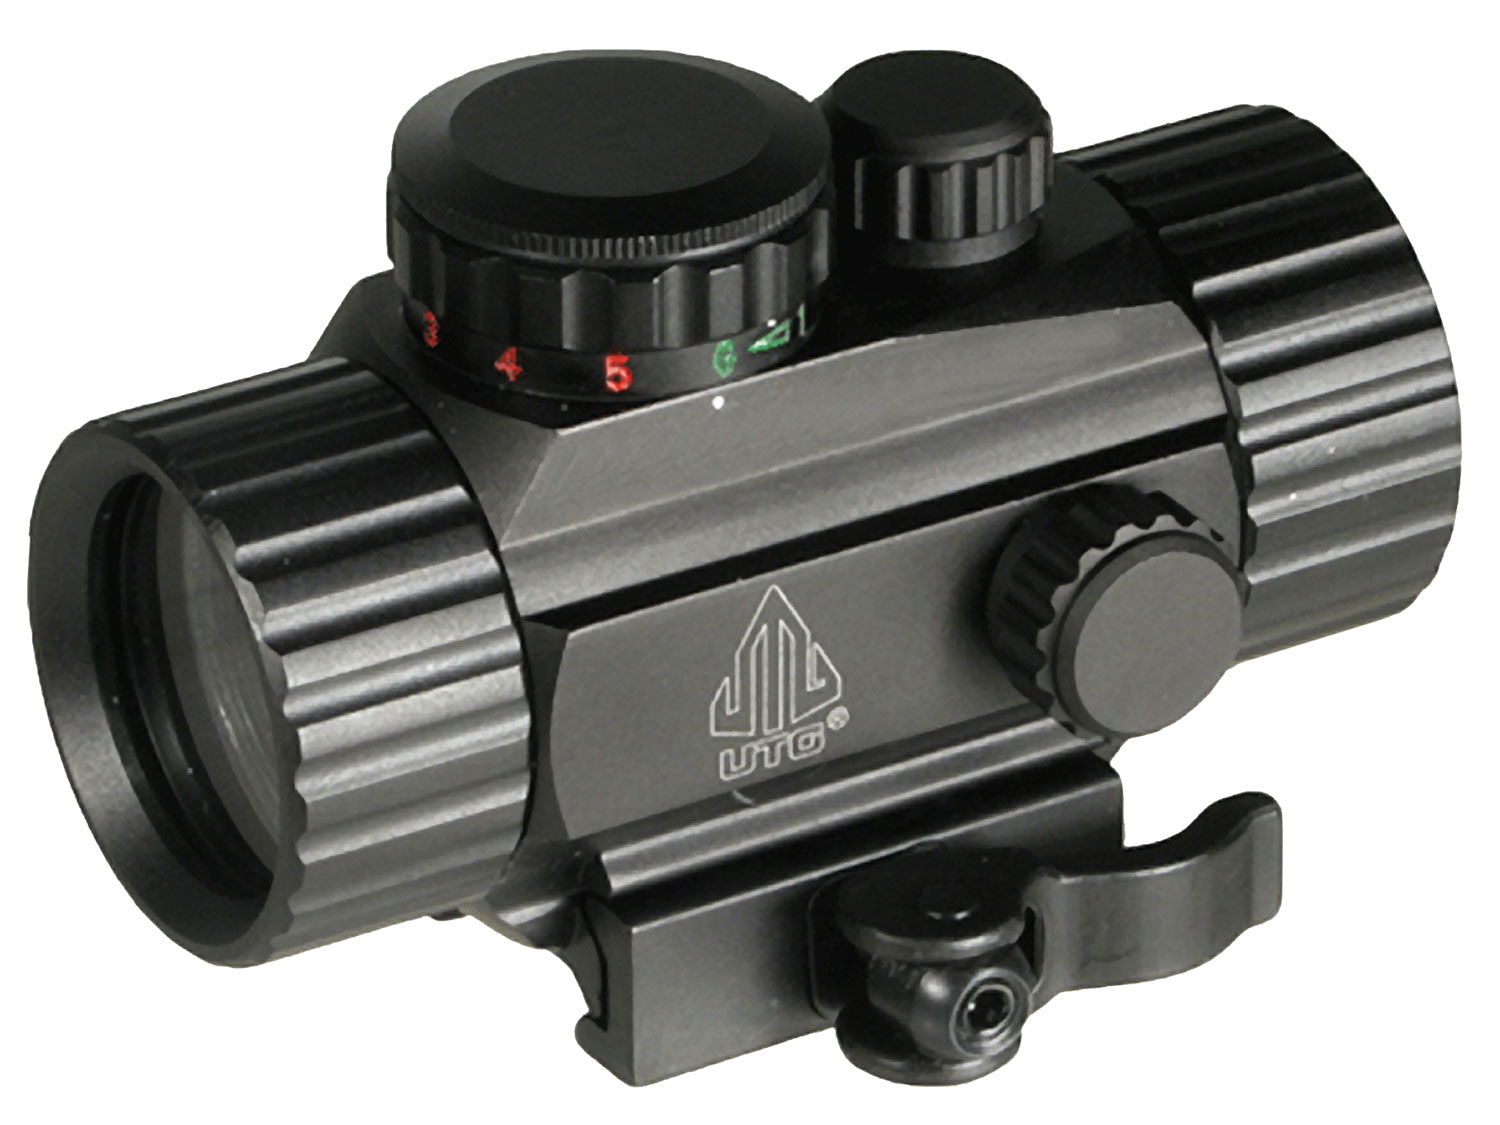 UTG SCP-RG40CDQ Circle Dot Sight 1x 30mm Obj N/A Eye Relief 4 MOA Black